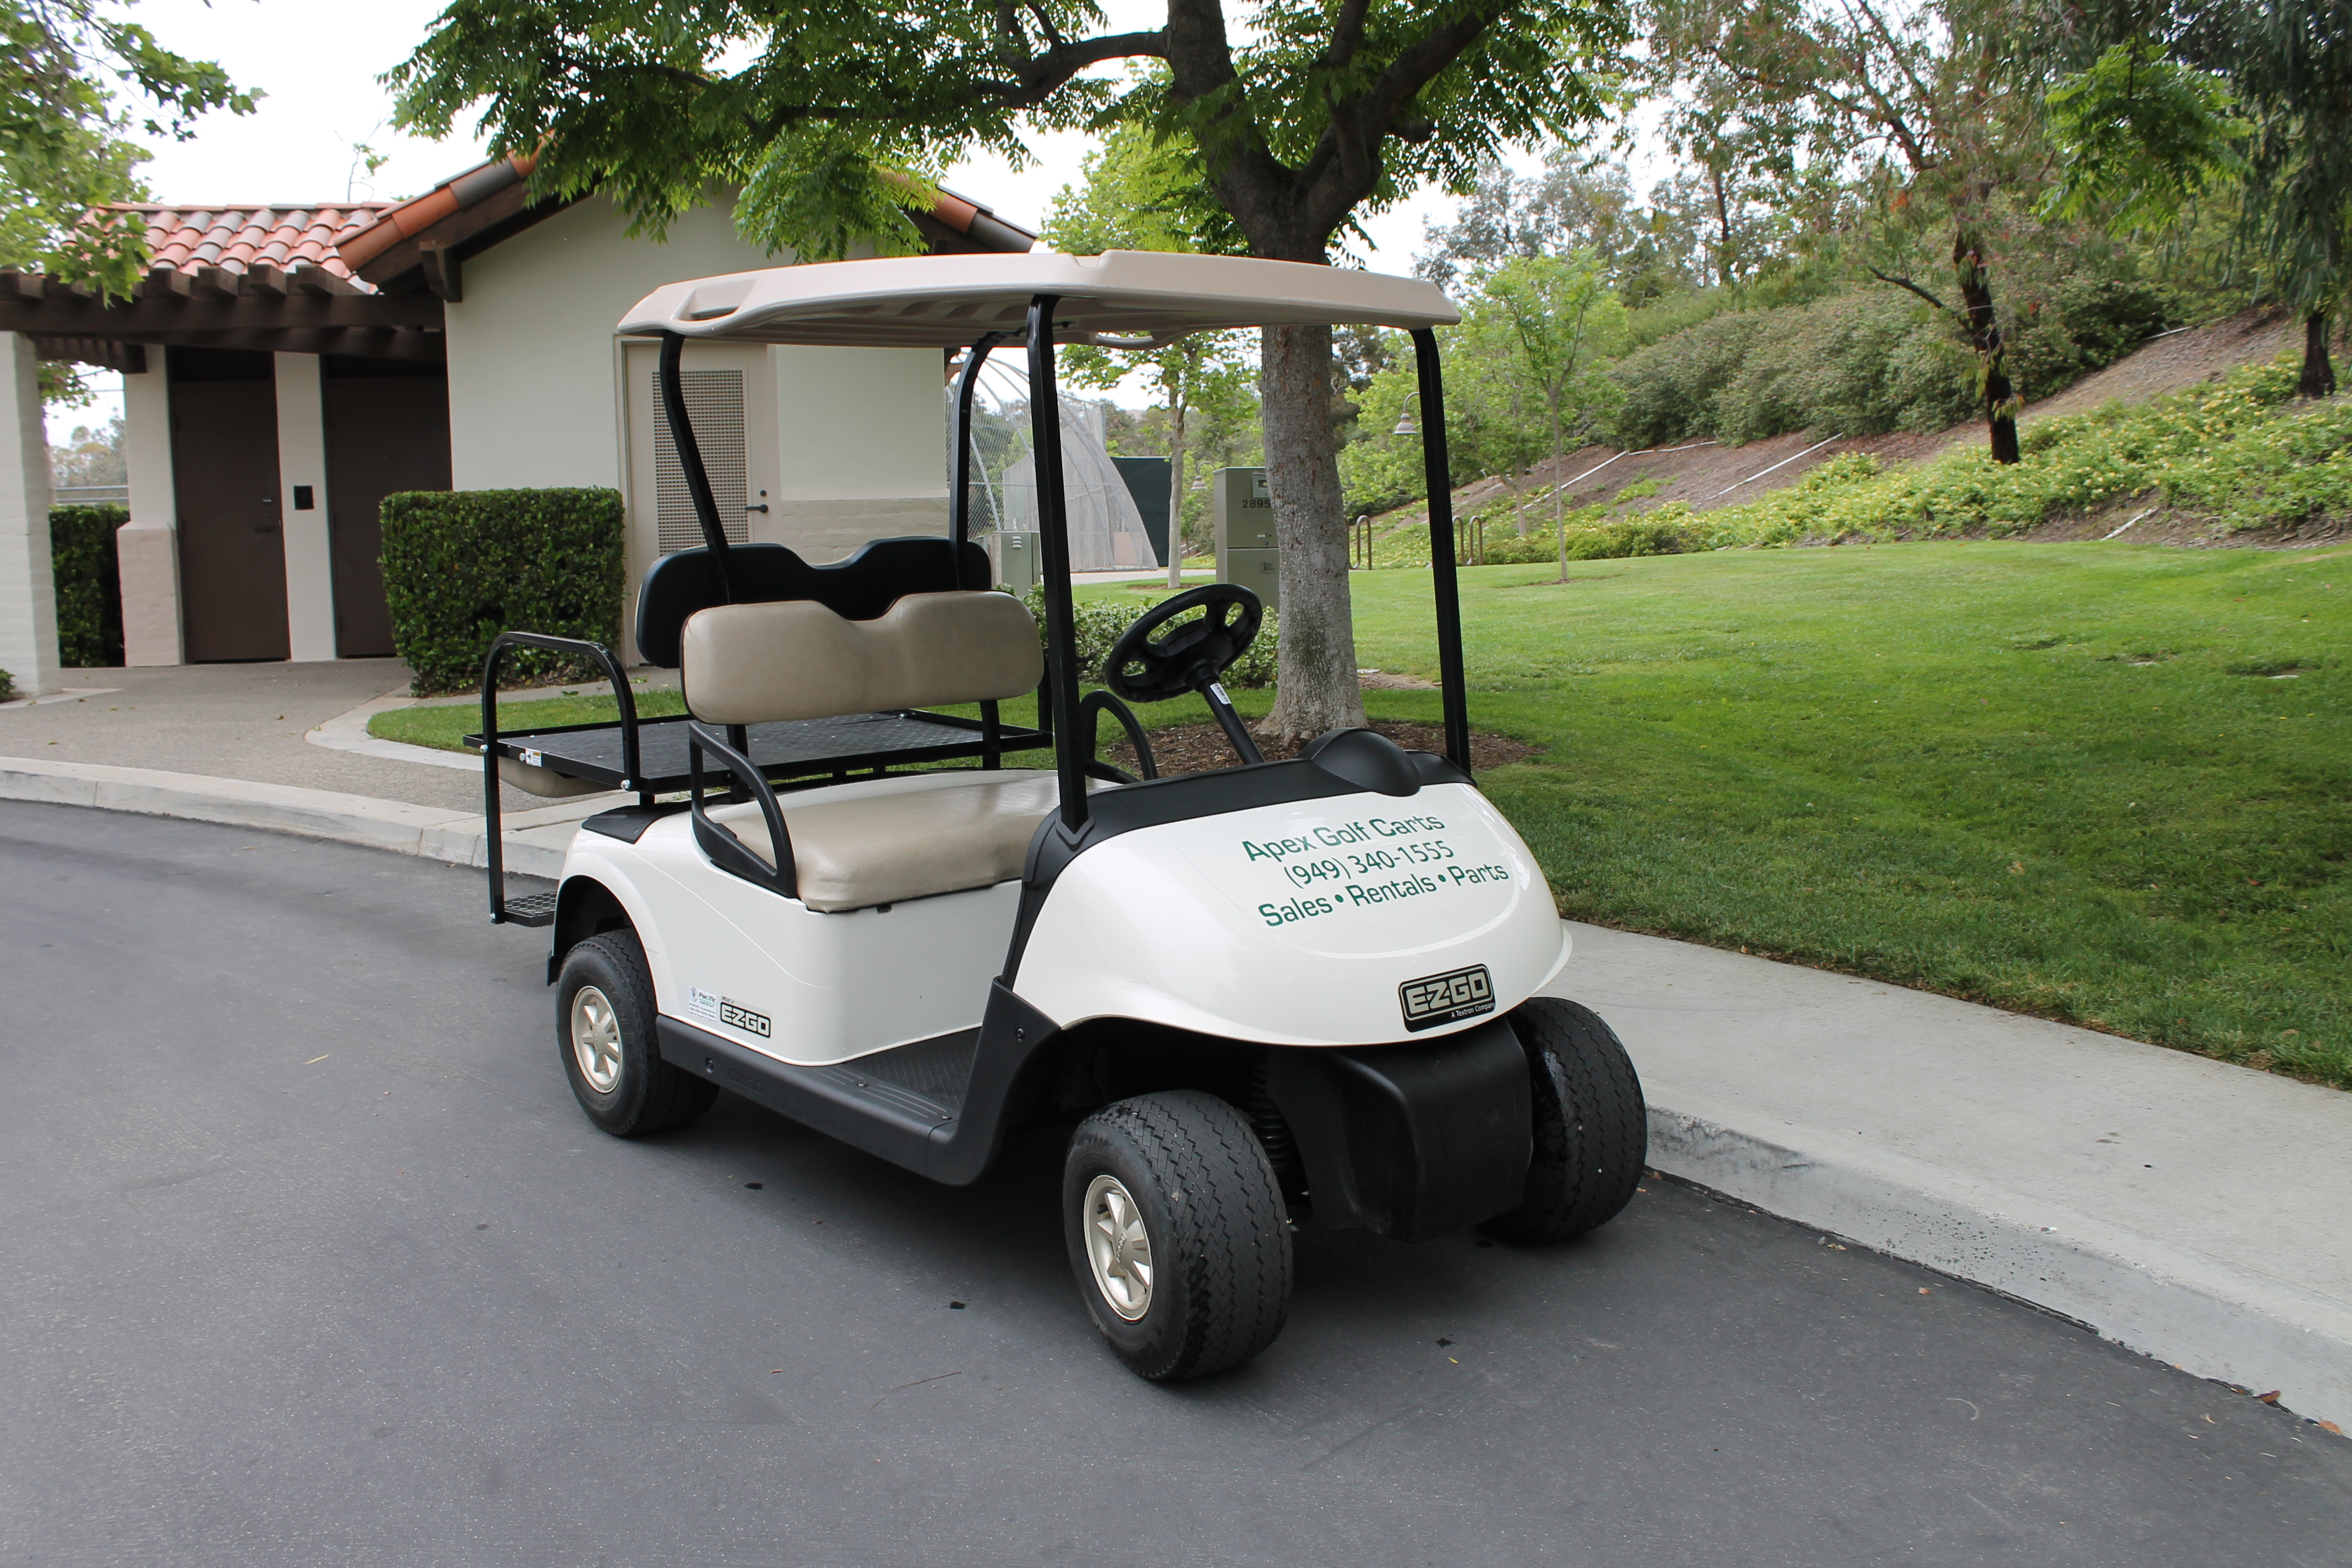 EzGo RXV Golf Cart Rental